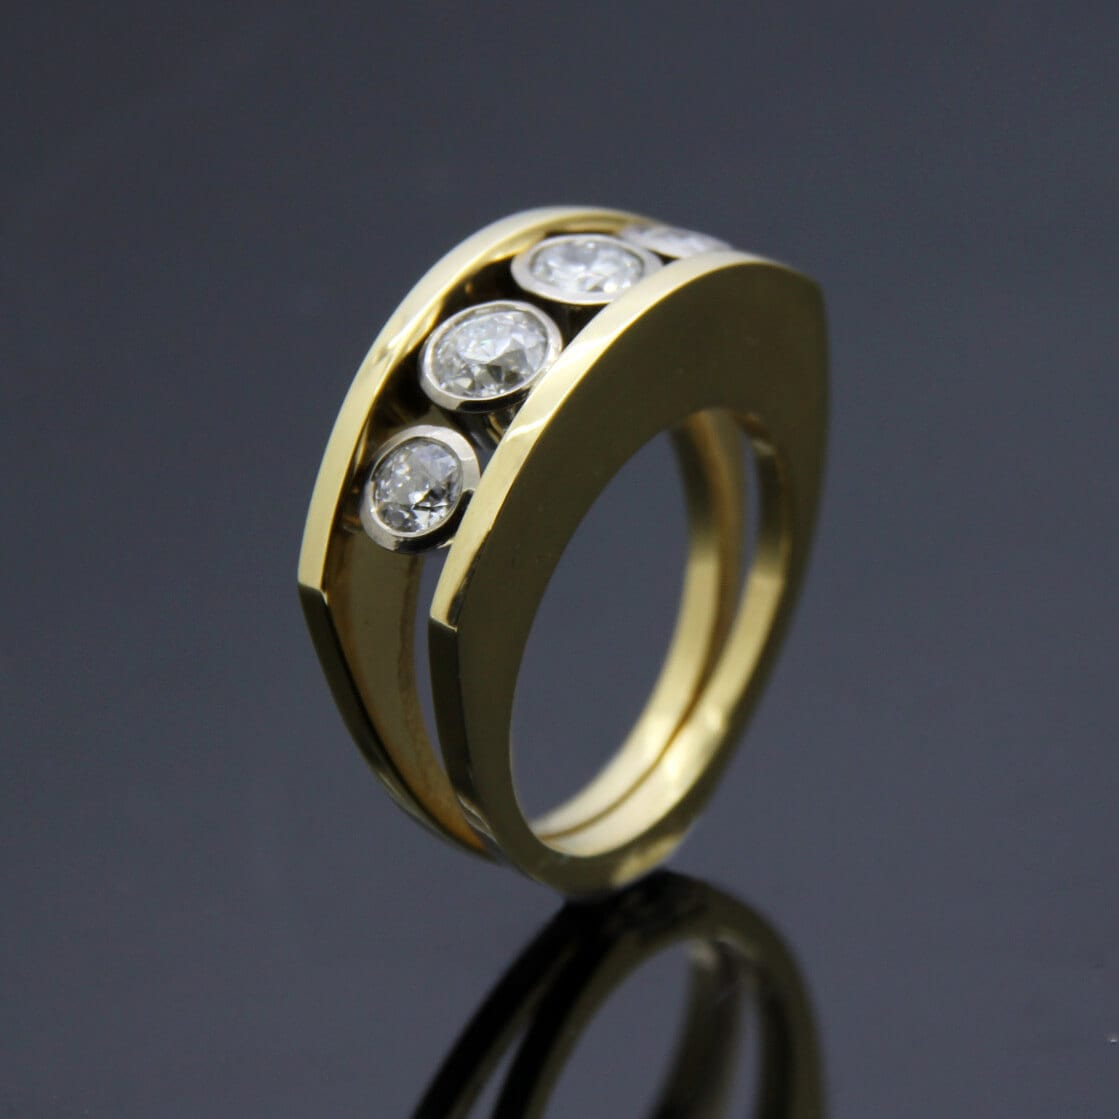 Handcrafted bespoke jewellery by Julian Stephens Goldsmith